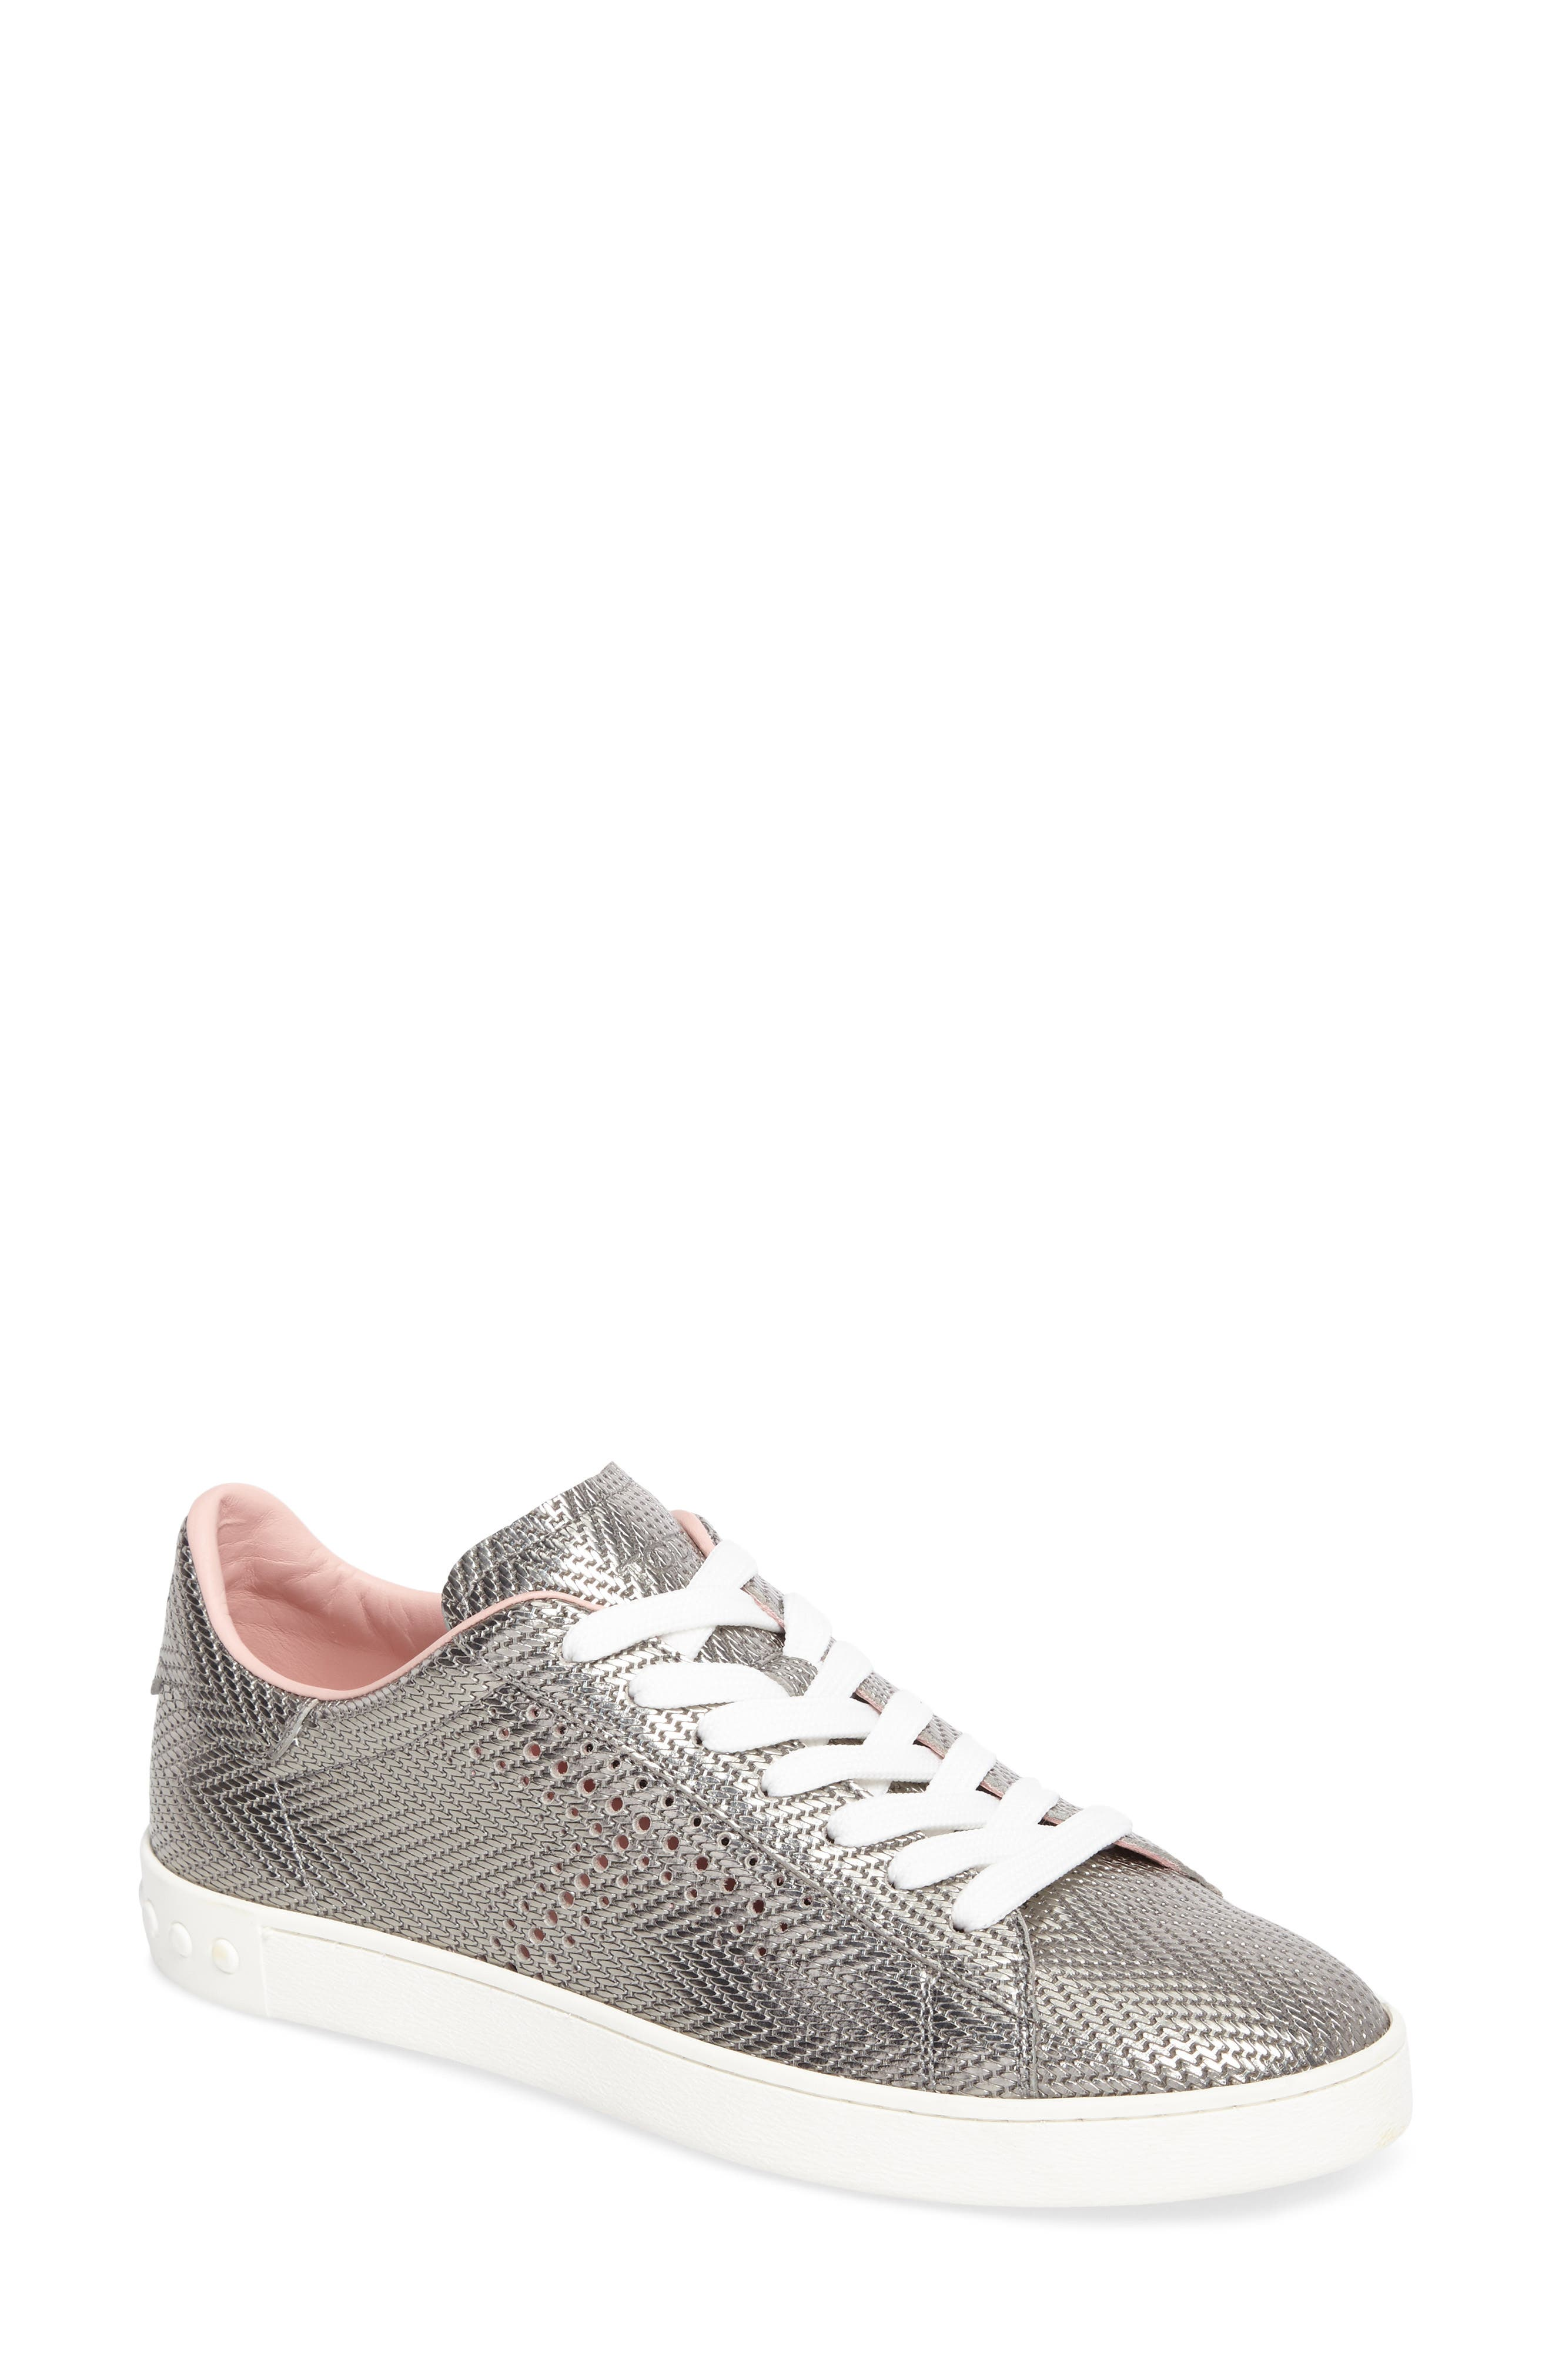 Perforated T Sneaker,                         Main,                         color, 040